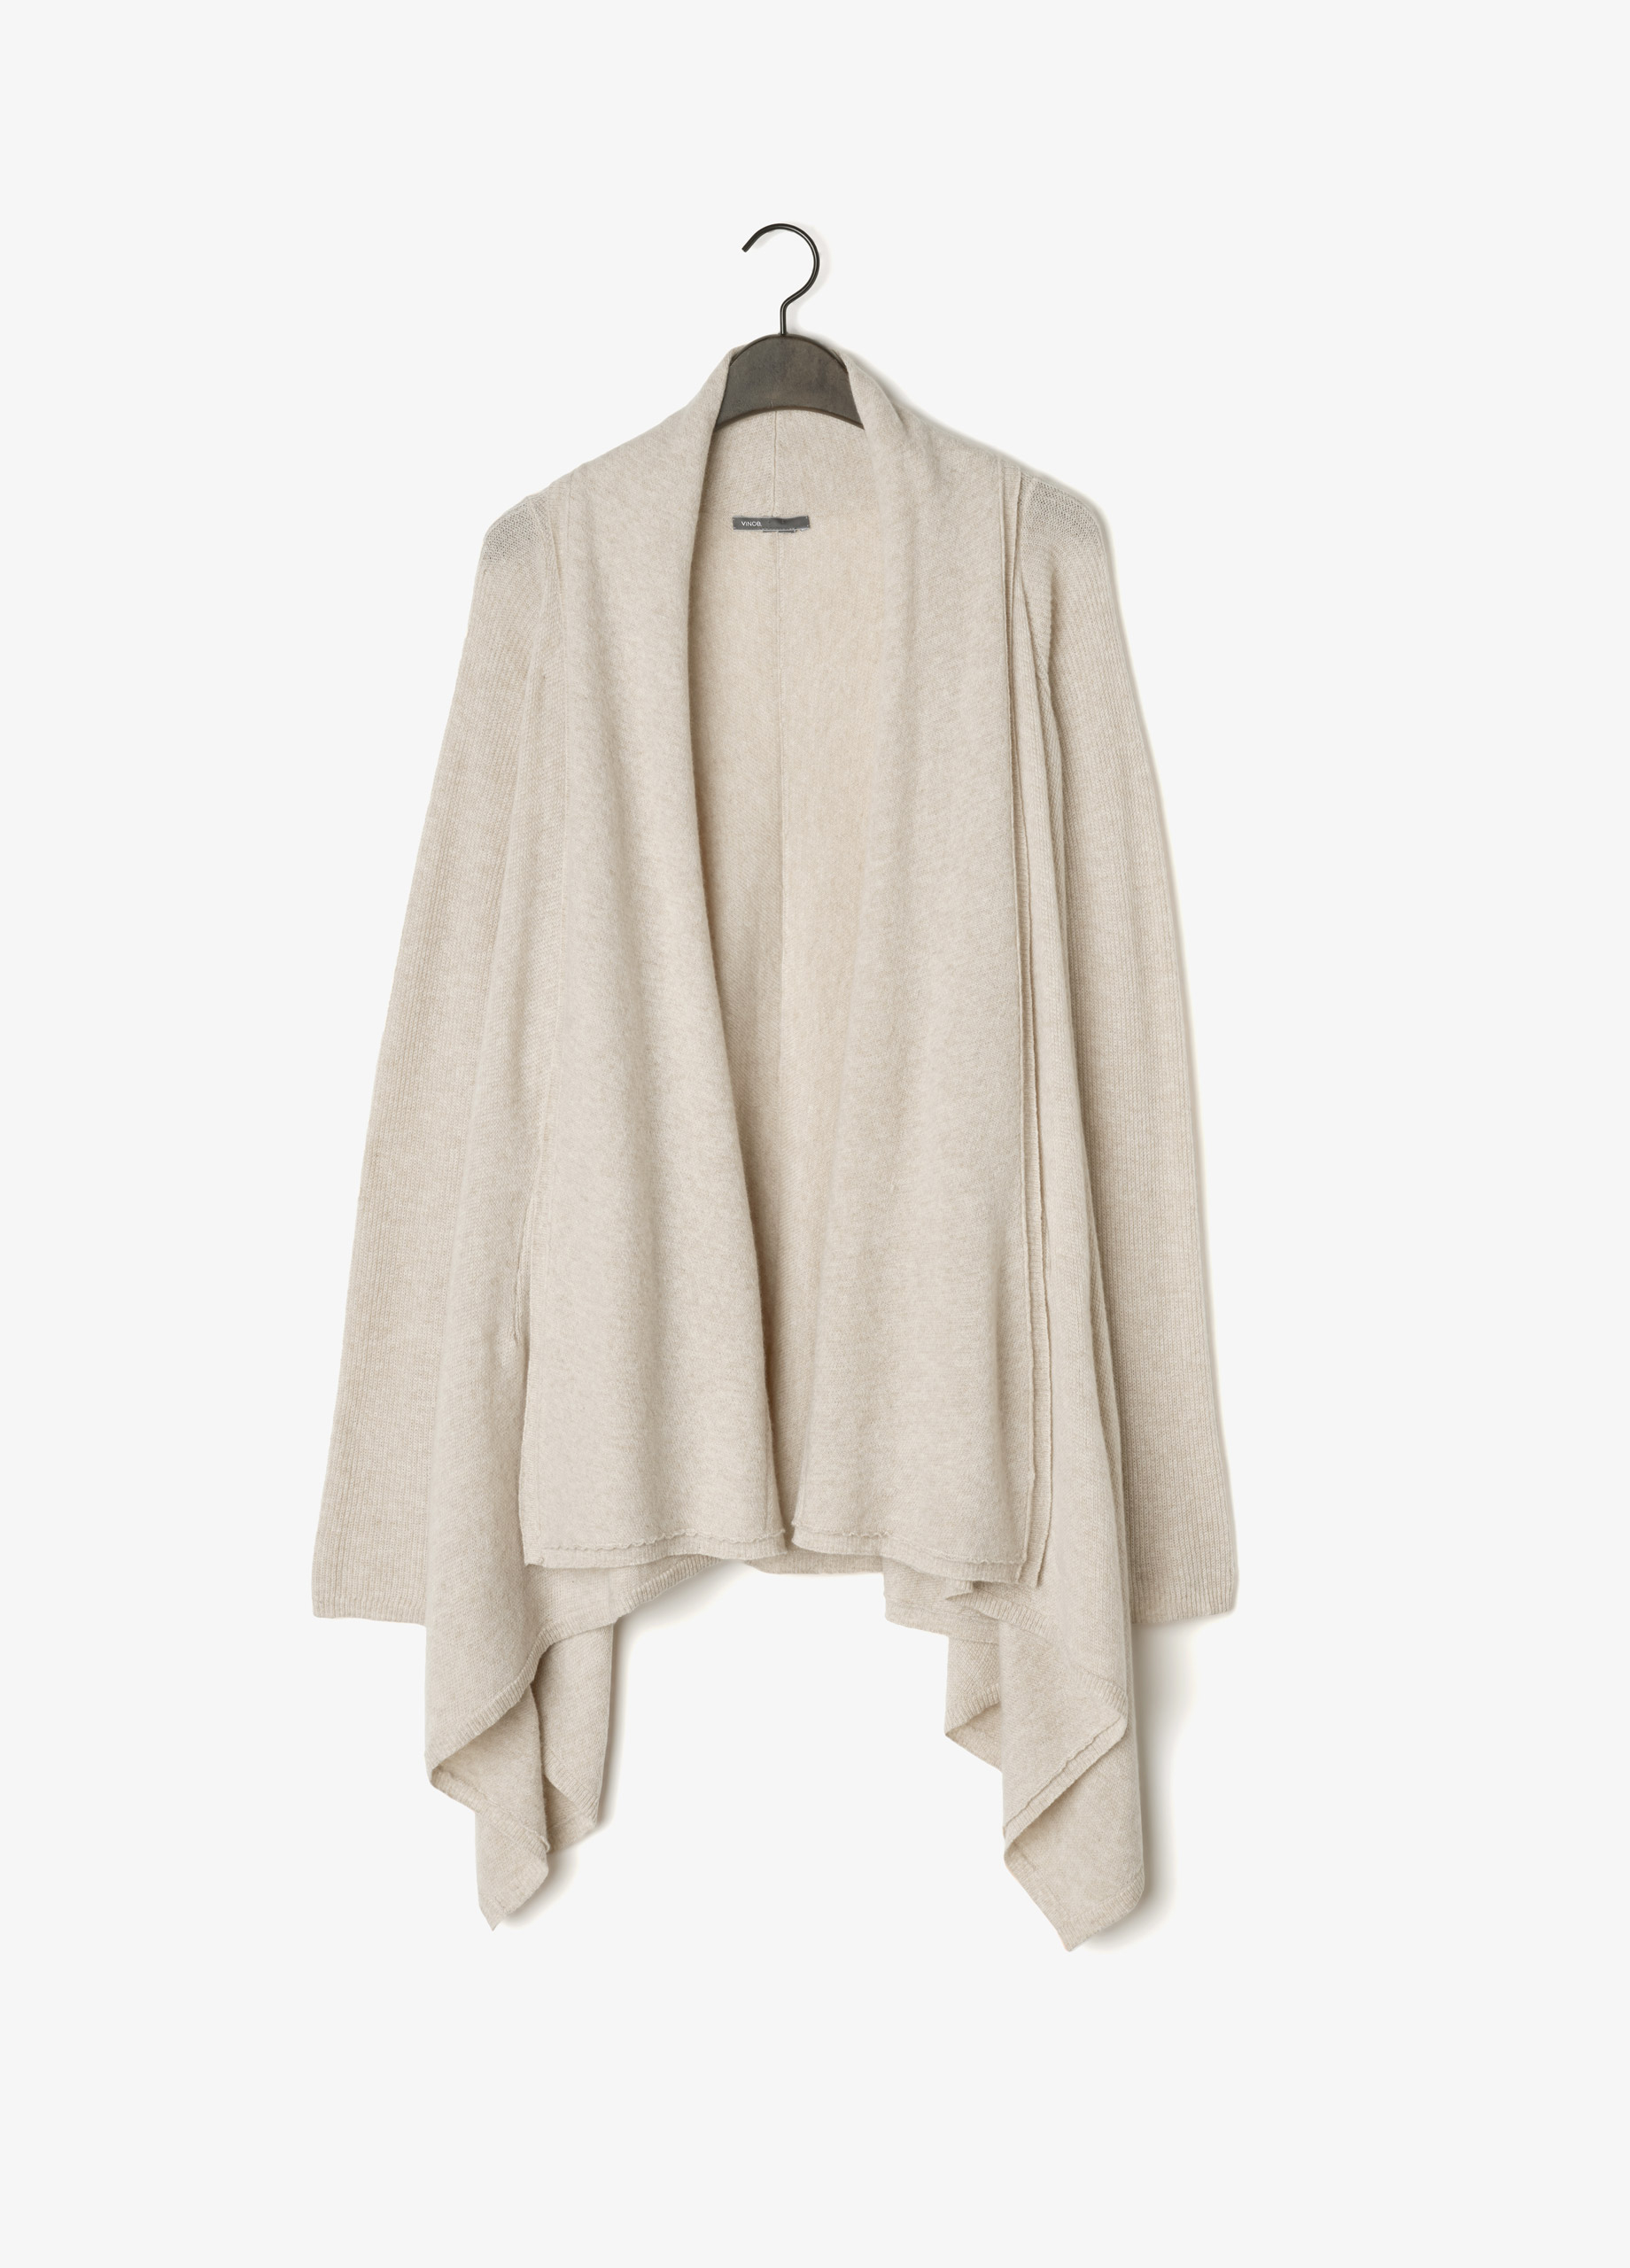 Vince Wool Cashmere Drape Cardigan in Natural | Lyst